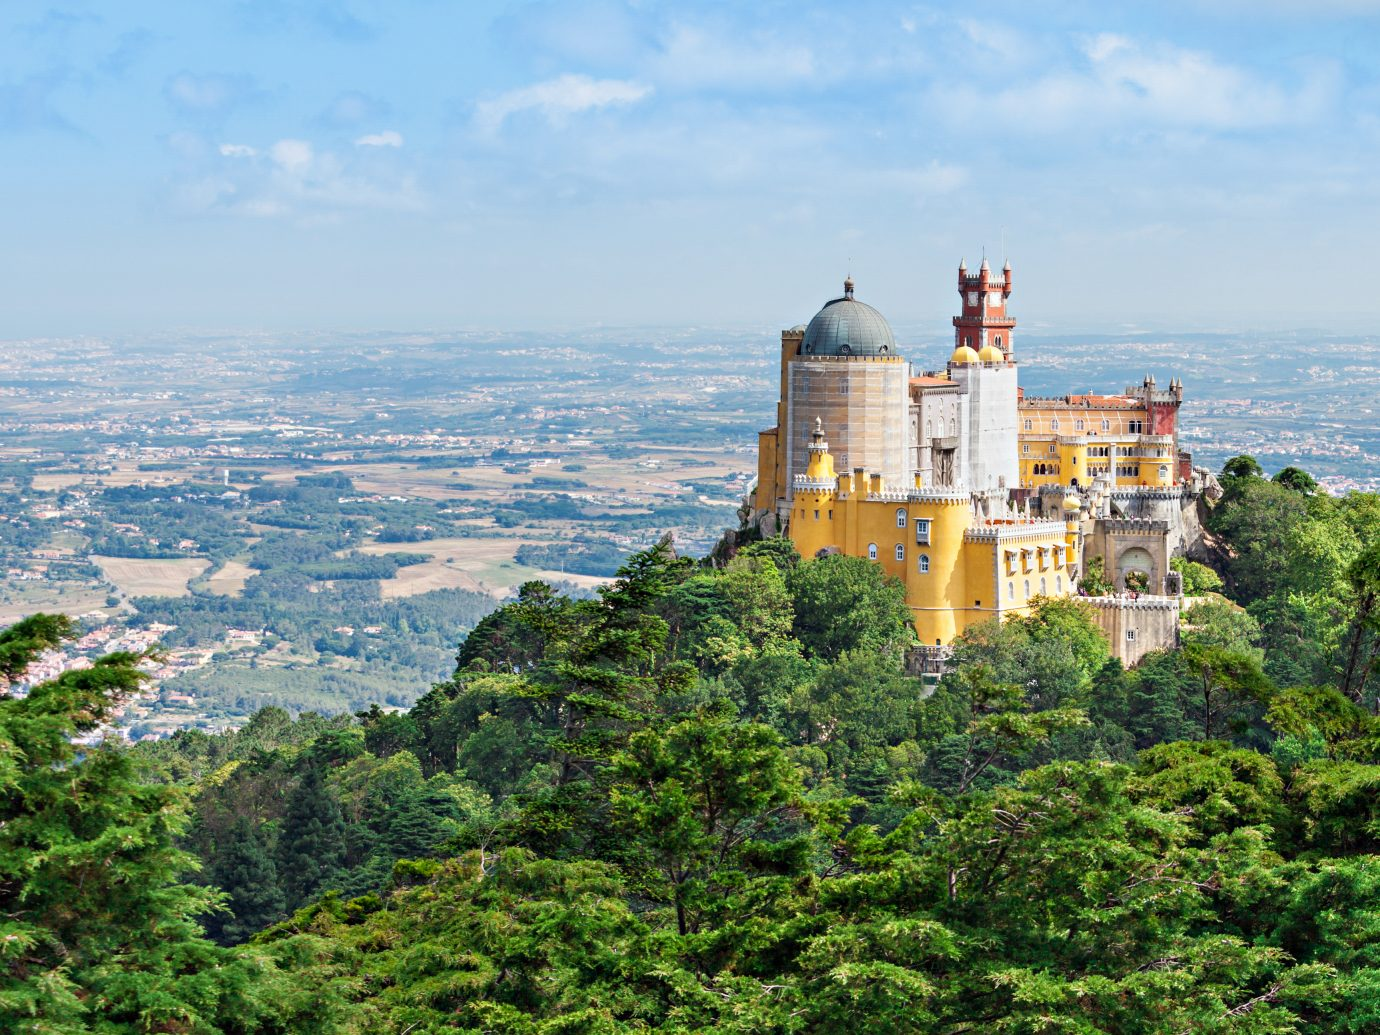 The Pena National Palace in Sao Pedro de Penaferrim, Sintra, Portugal